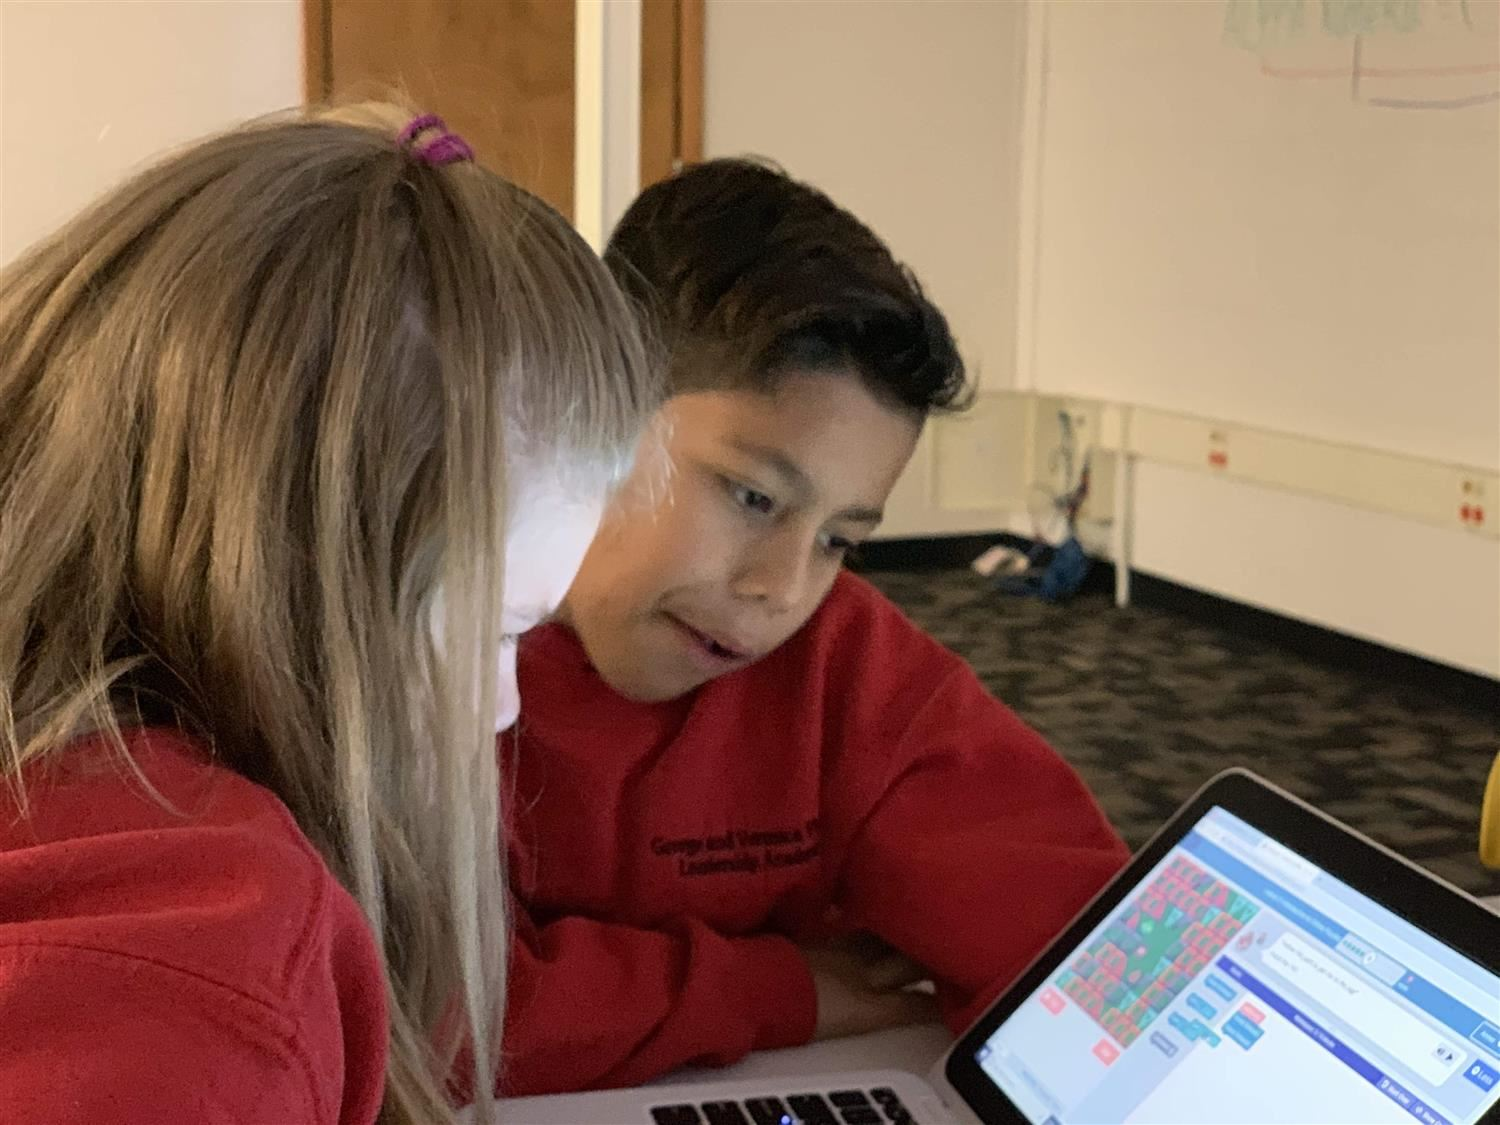 Phalen Leadership Academies Launches Tuition-Free Online K-12 School for Indiana Students